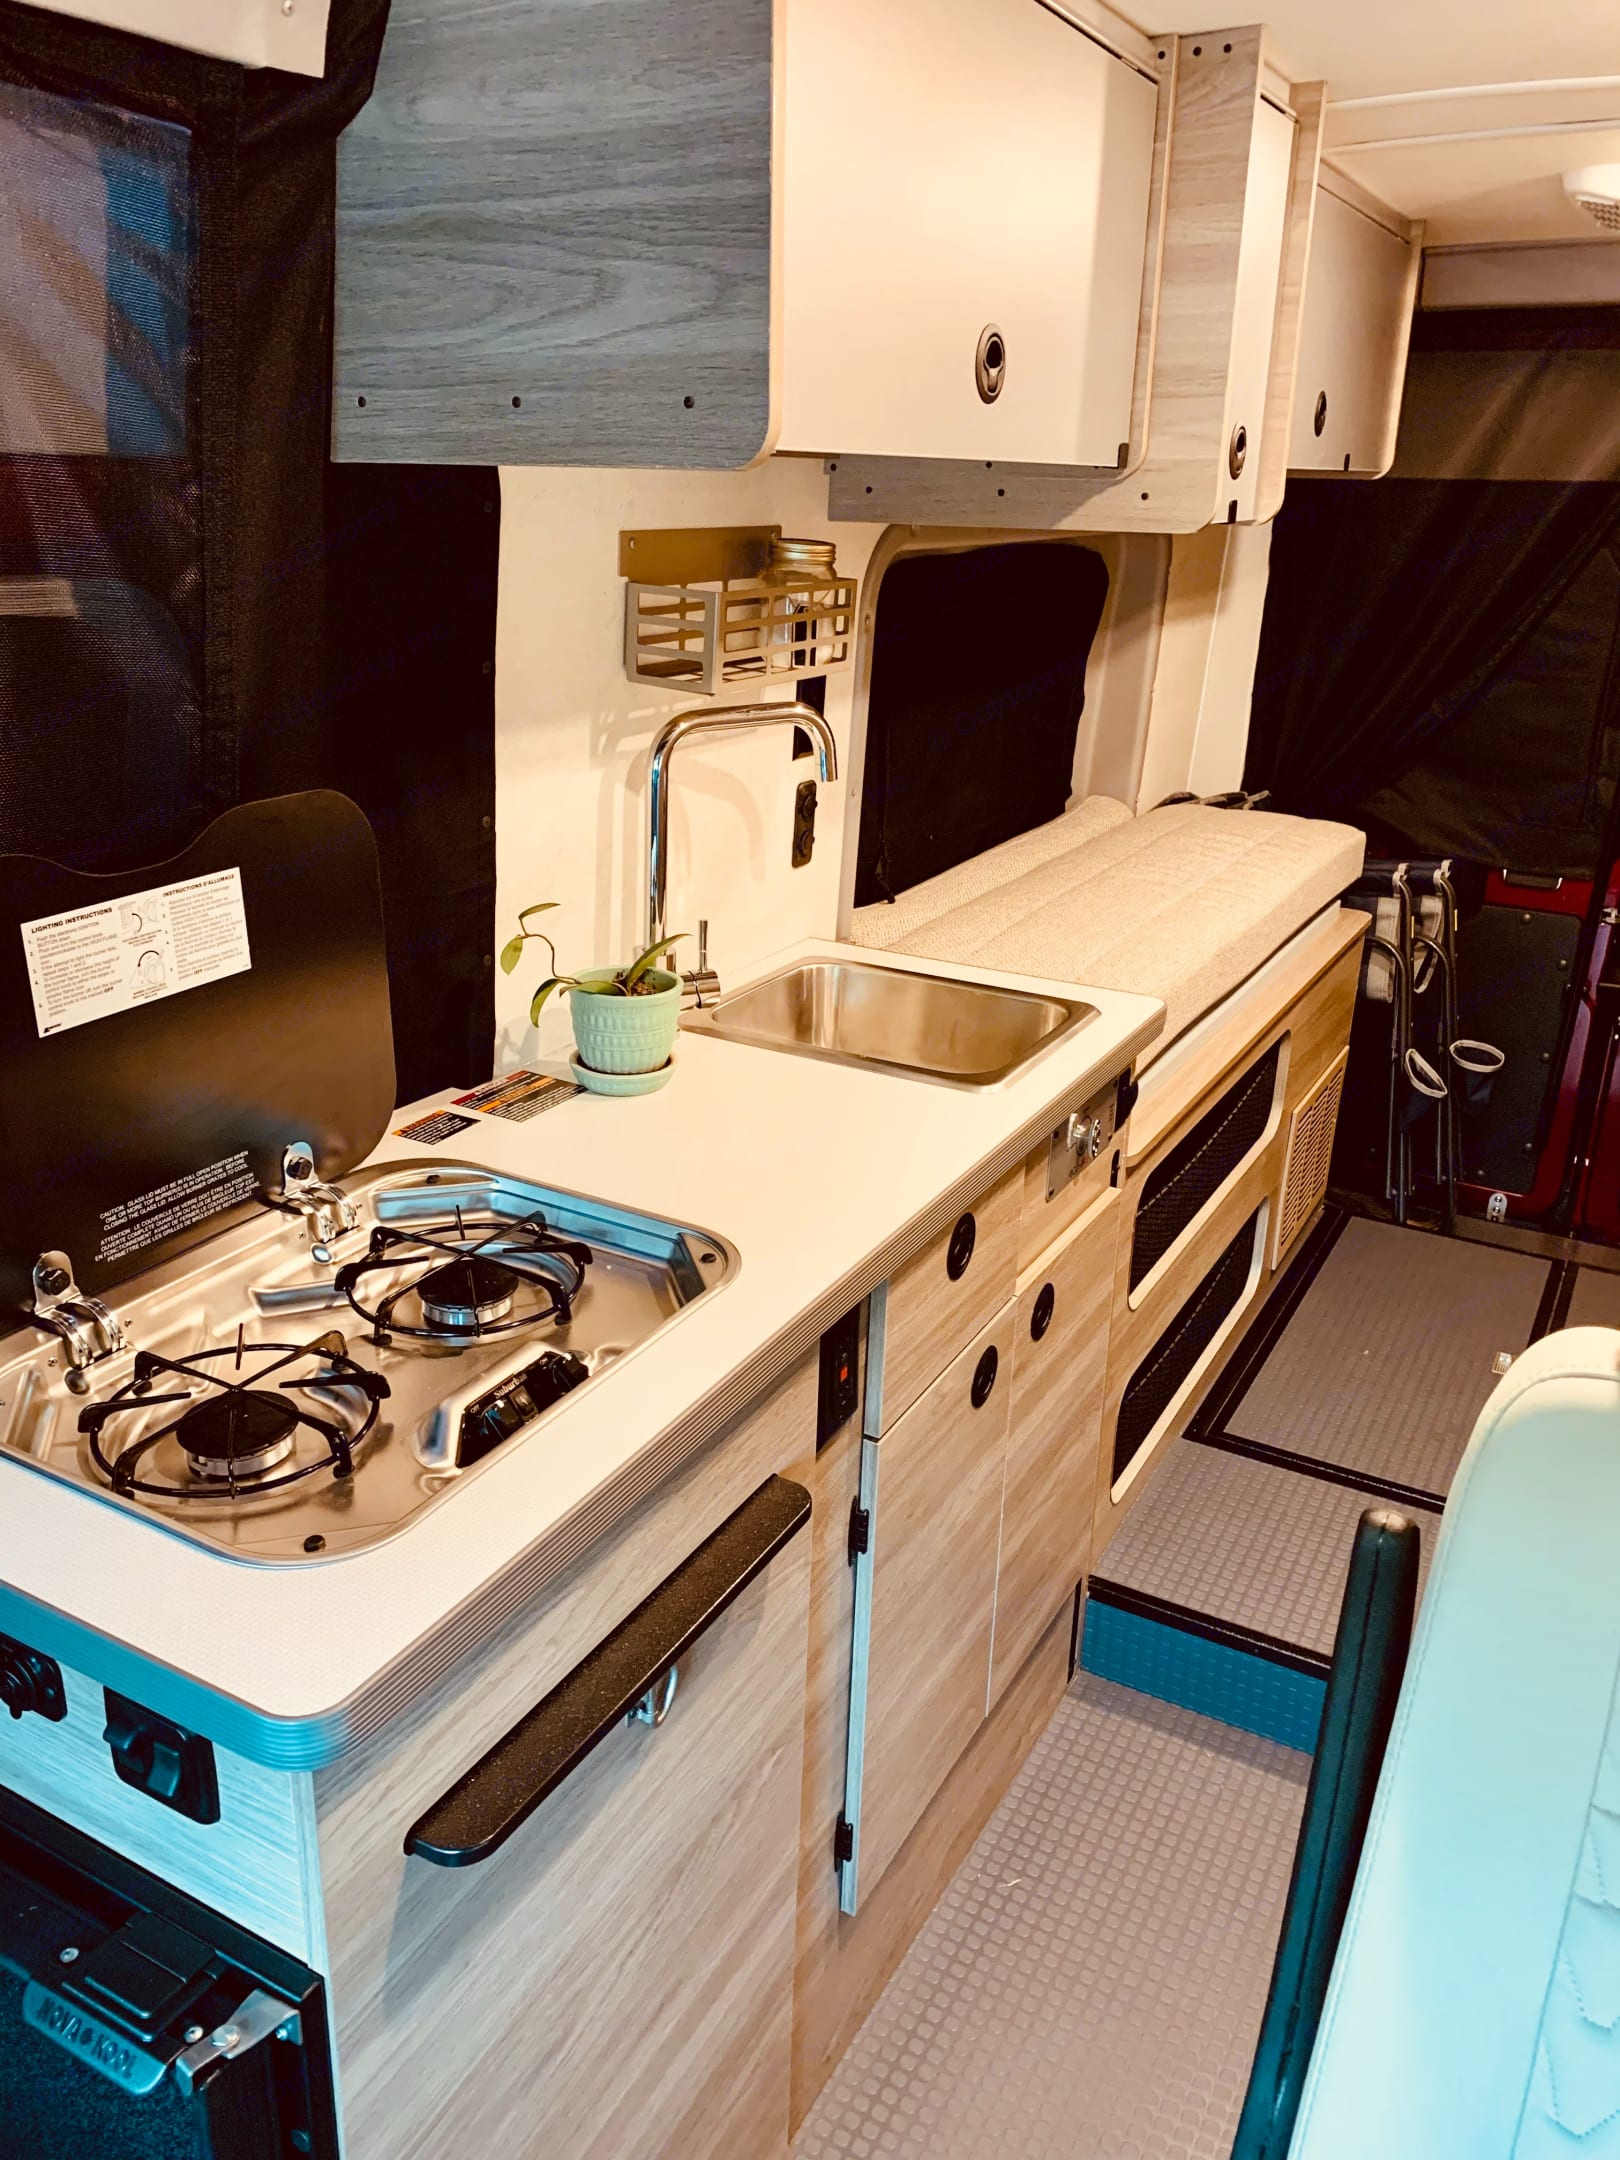 2 burner stove and spacious storage in the kitchen!  Extra counter space pull out on the side!. Winnebago Solis 59PX 2021